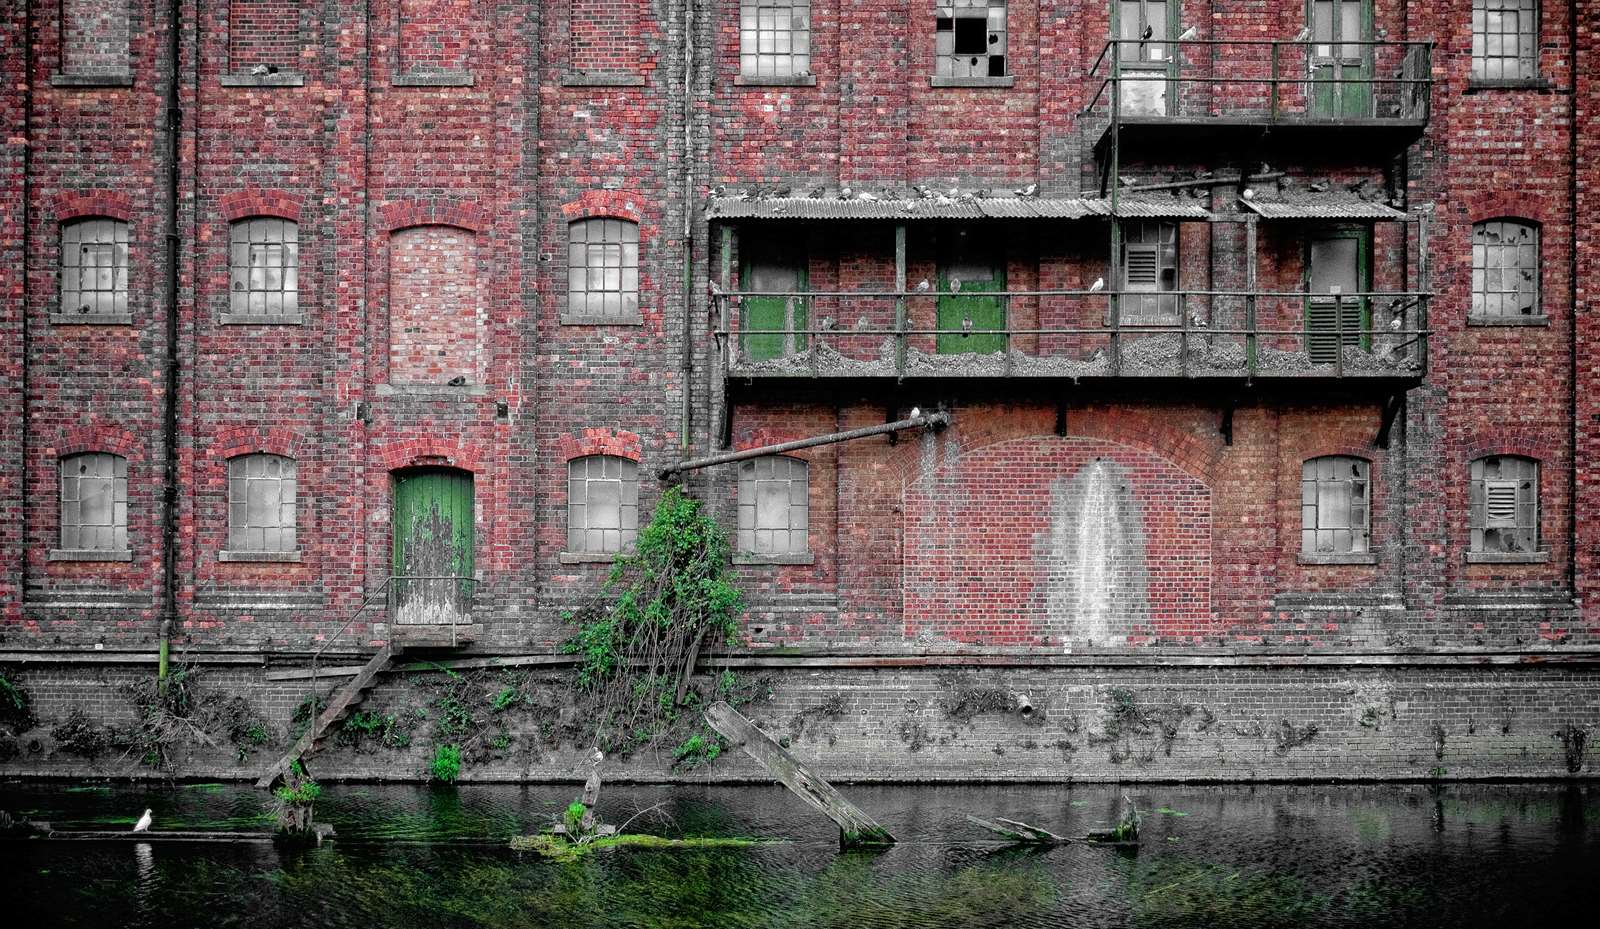 The old bread mill at Wellingborough on the River Nene, now inhabited by a million pigeons.